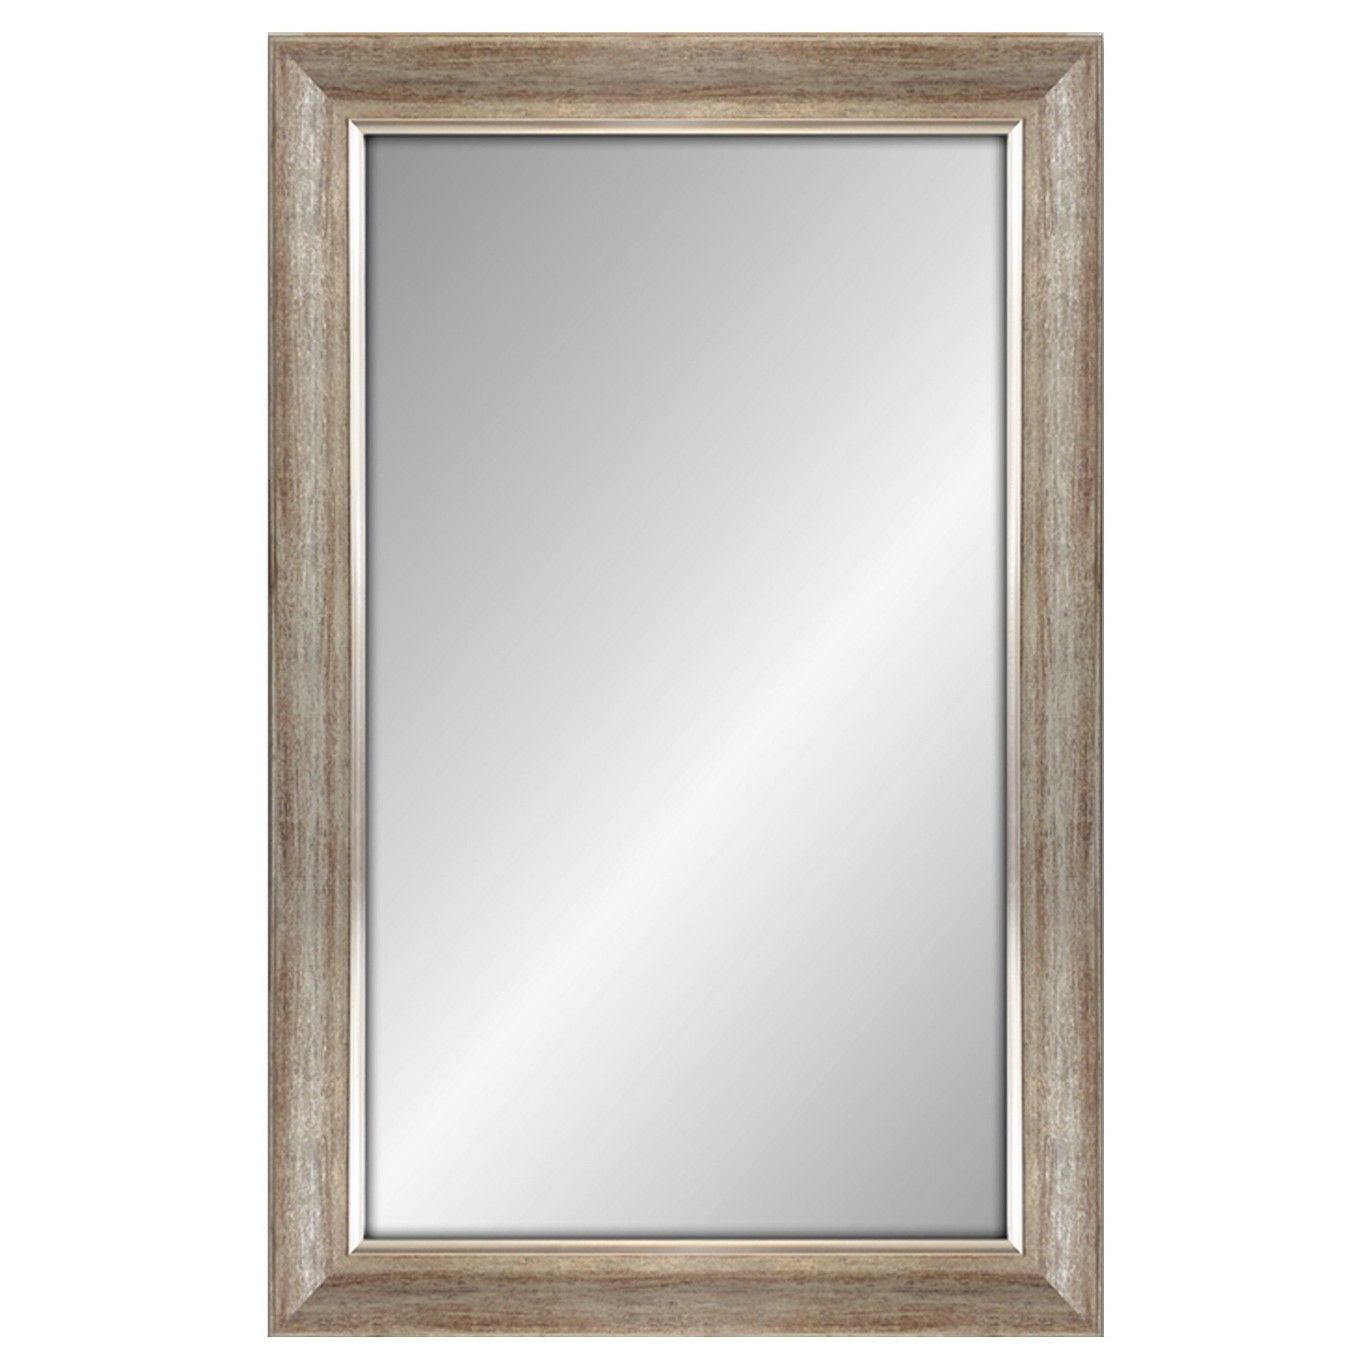 Threshold rectangle decorative wall mirror white finish with silver